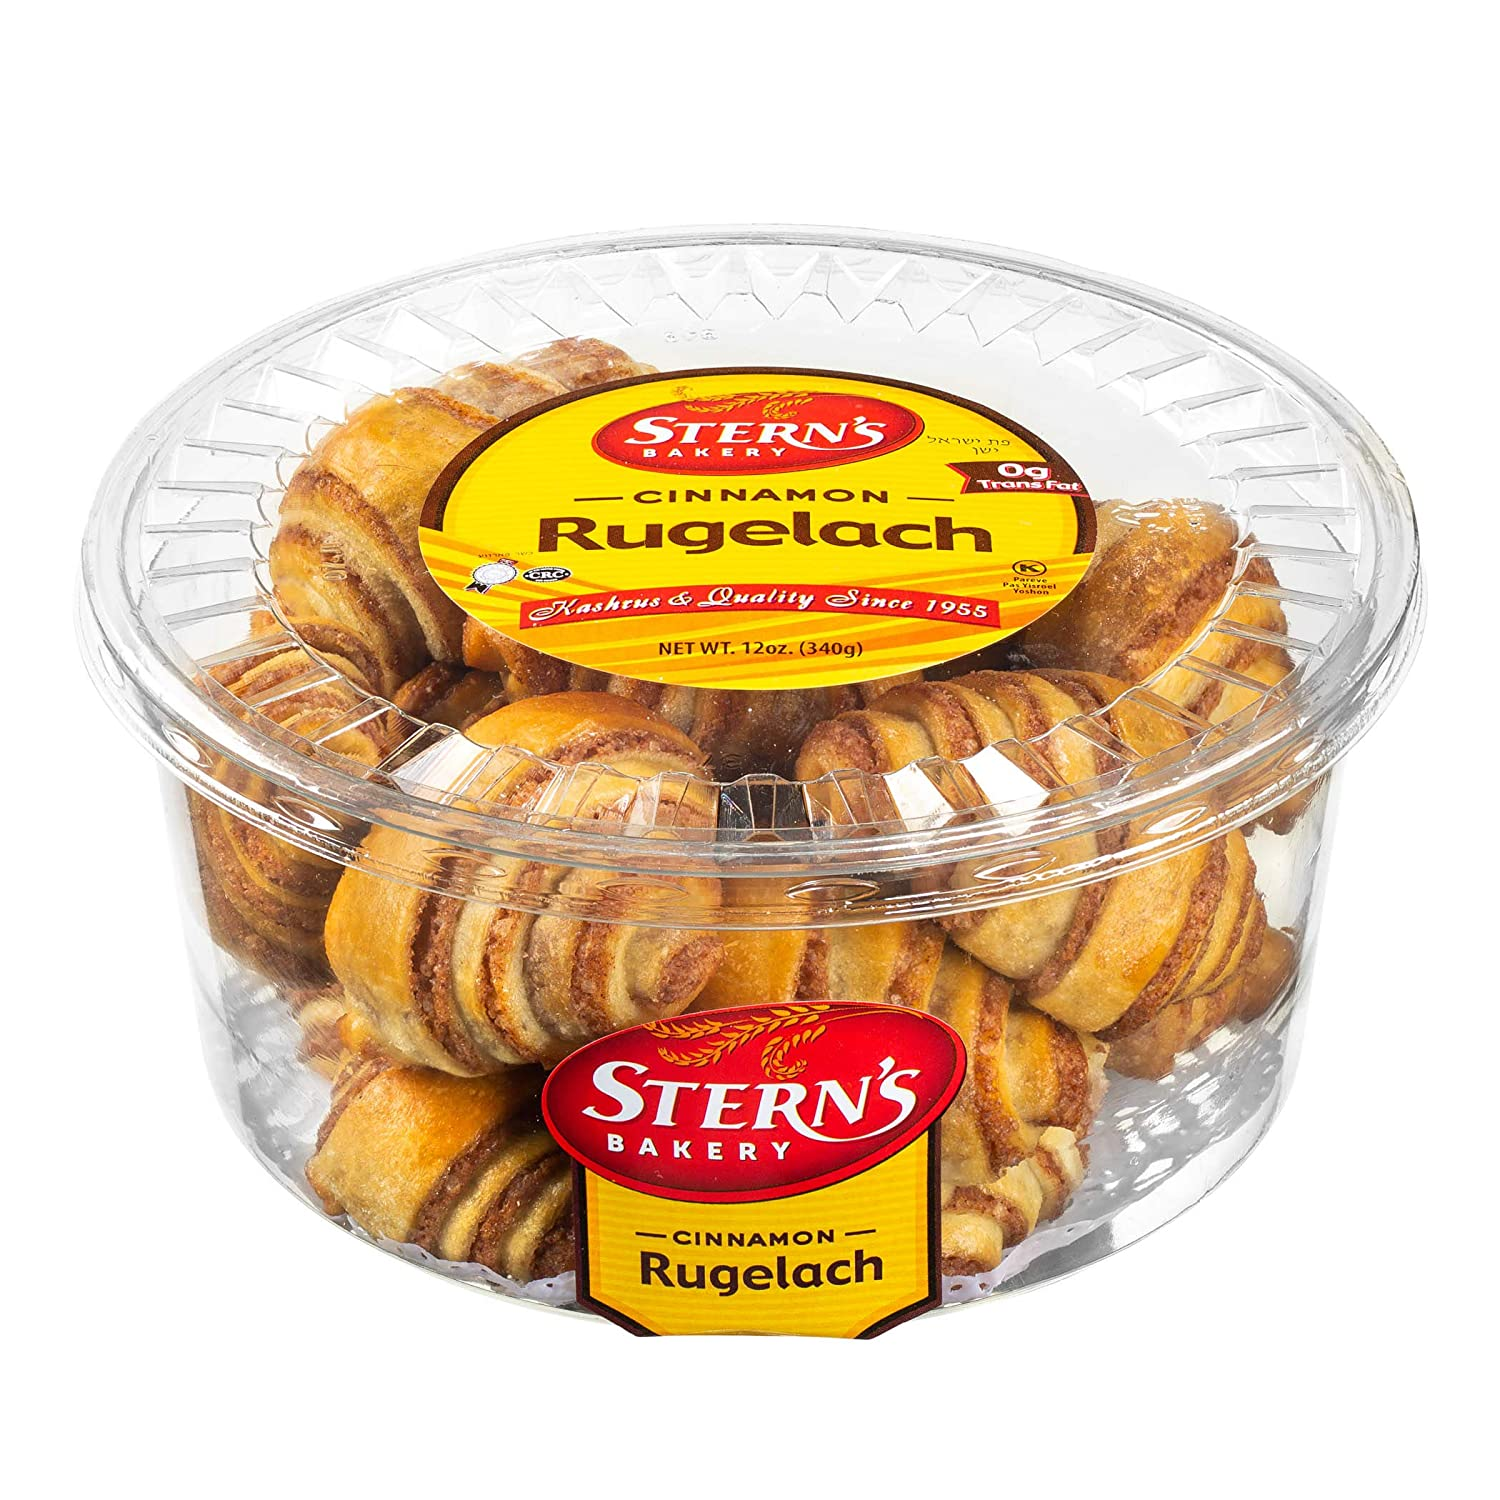 Cinnamon Rolls | Cinnamon Buns | Breakfast Pastry | Rugelach Pastries Cinnamon Croissants | Preservative Free & No Coloring Added | Dairy, Nut & Soy Free | 12 oz Stern's Bakery